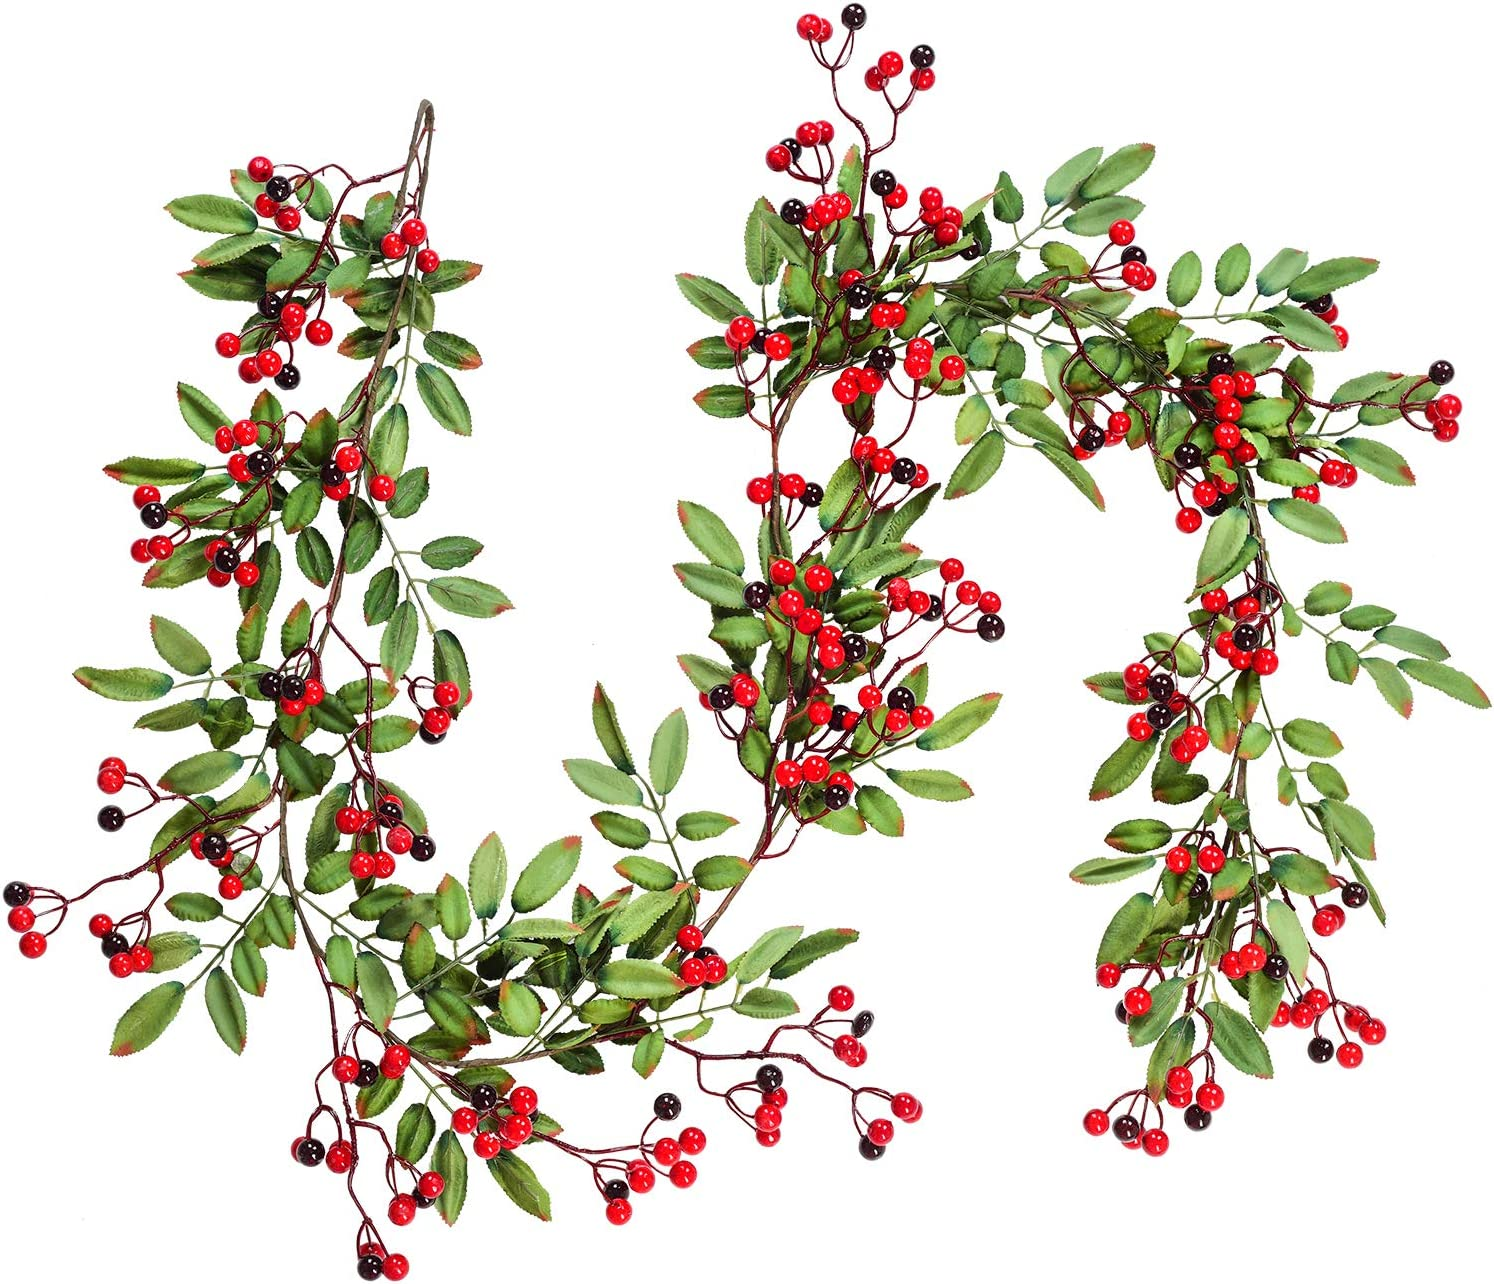 DearHouse 5.83 Ft Red Berry Christmas Garland, Artificial Berry Garland for Indoor Outdoor Hone Fireplace Decoration for Winter Christmas Holiday New Year Decor